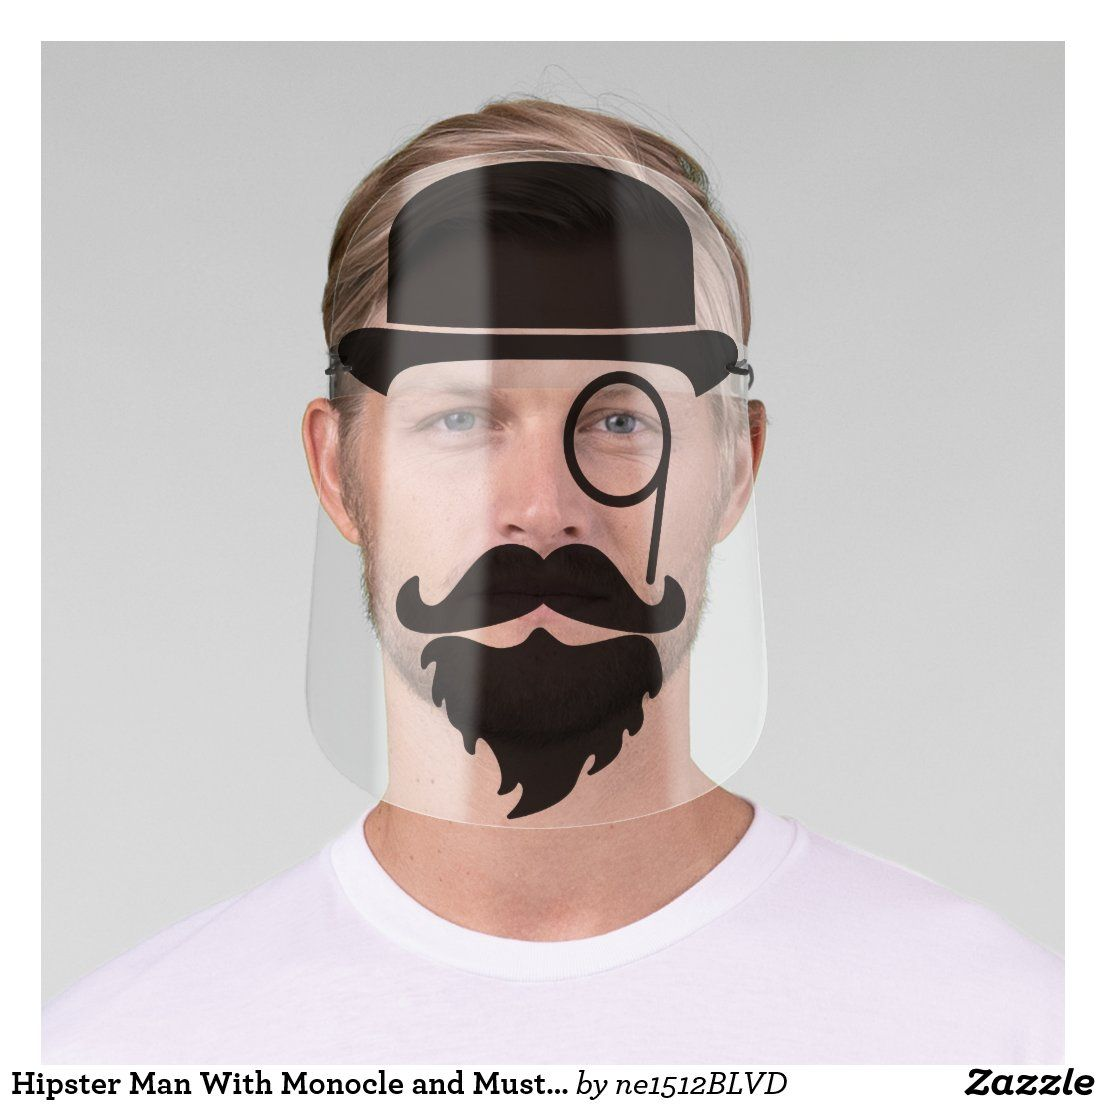 Hipster man with monocle and mustache beard face shield